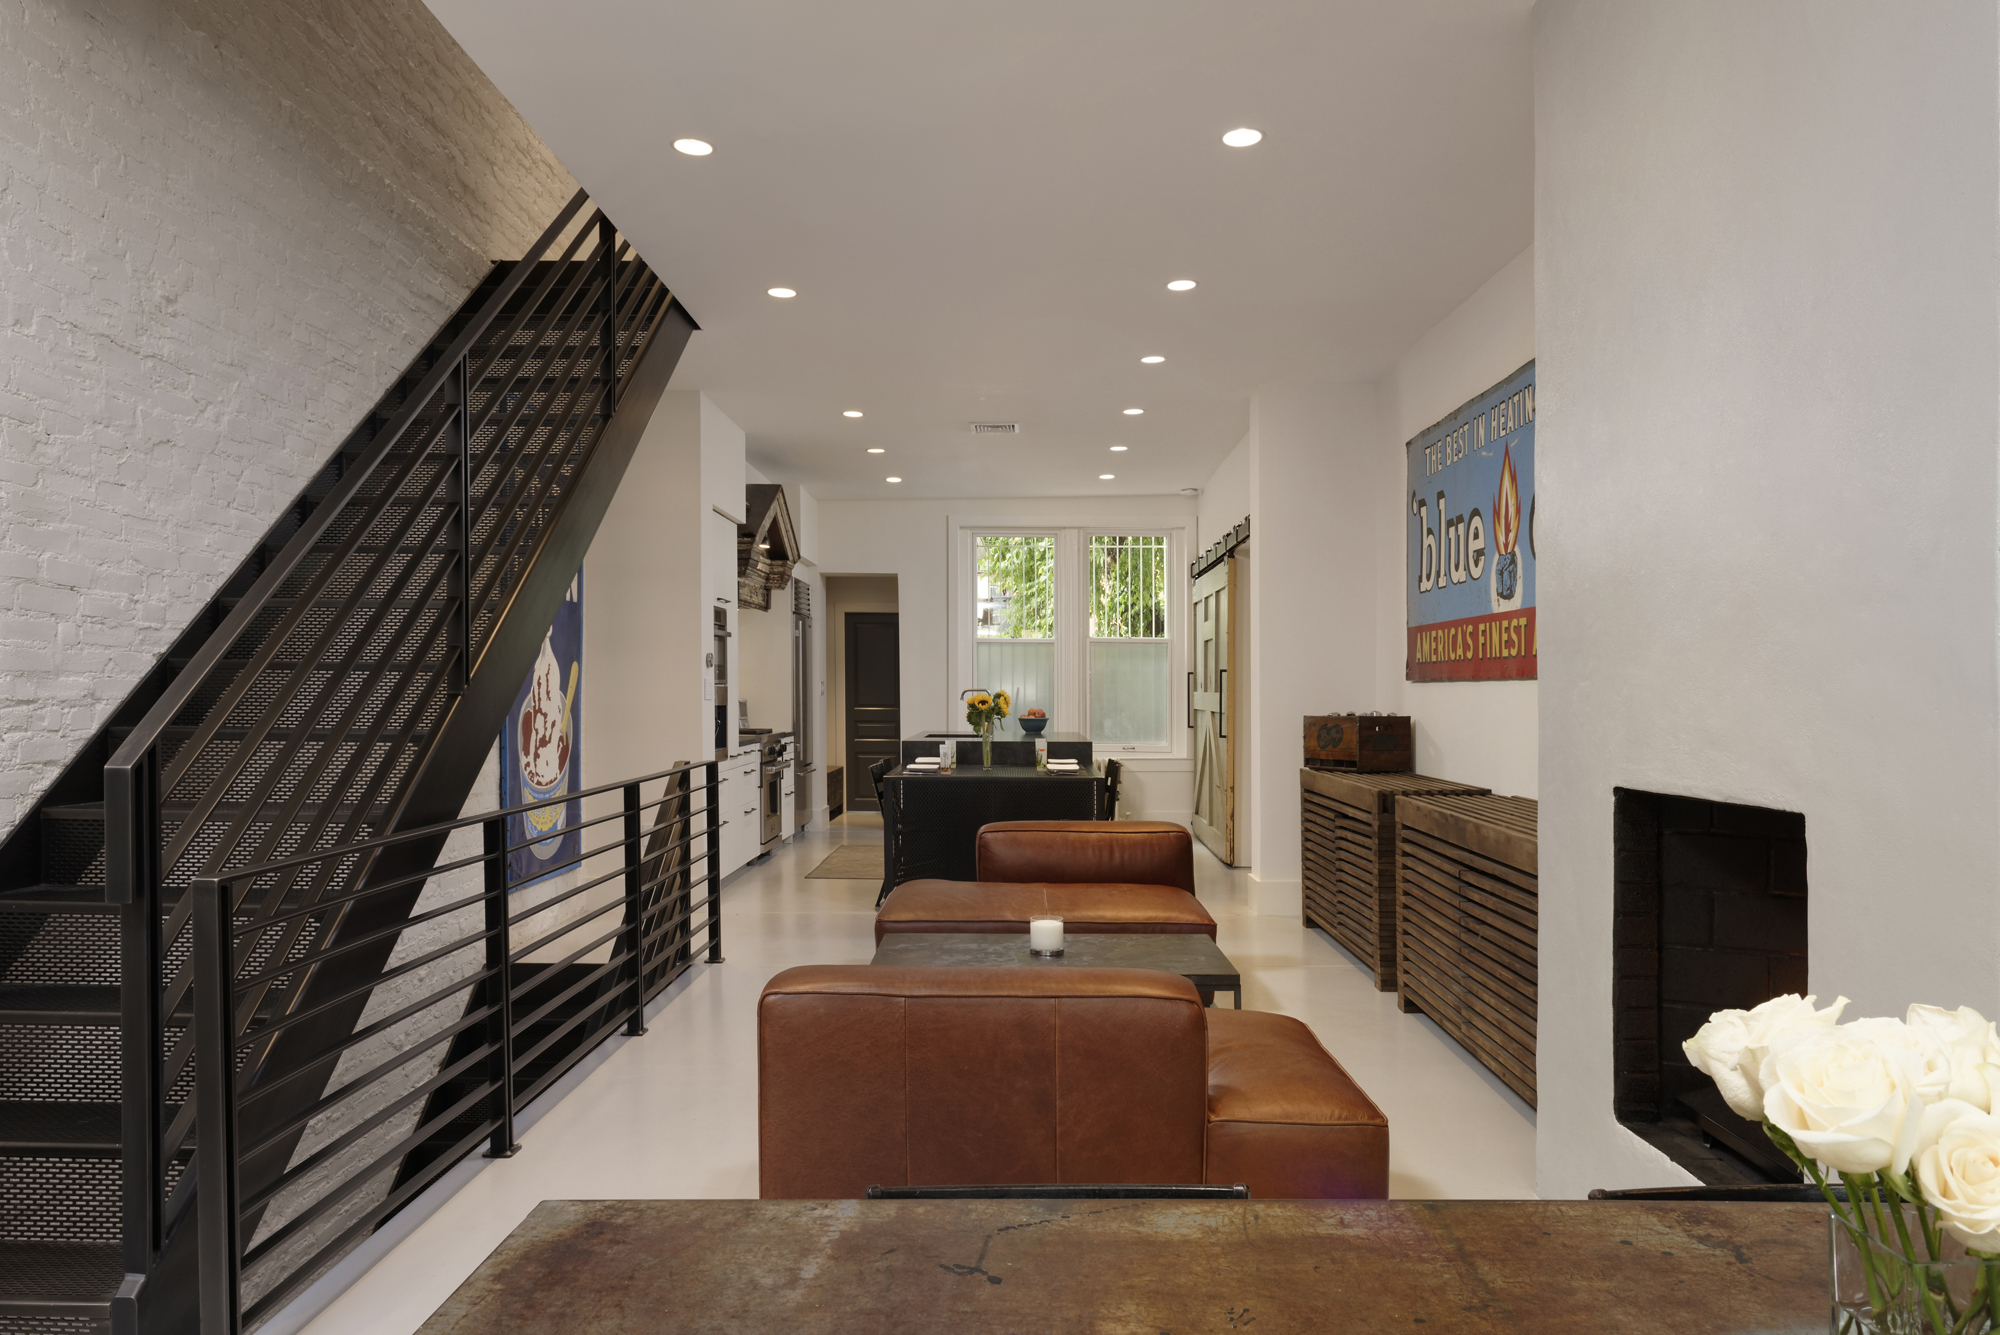 Industrial Chic Row Home Renovation in Dupont Circle, DC   BOWA